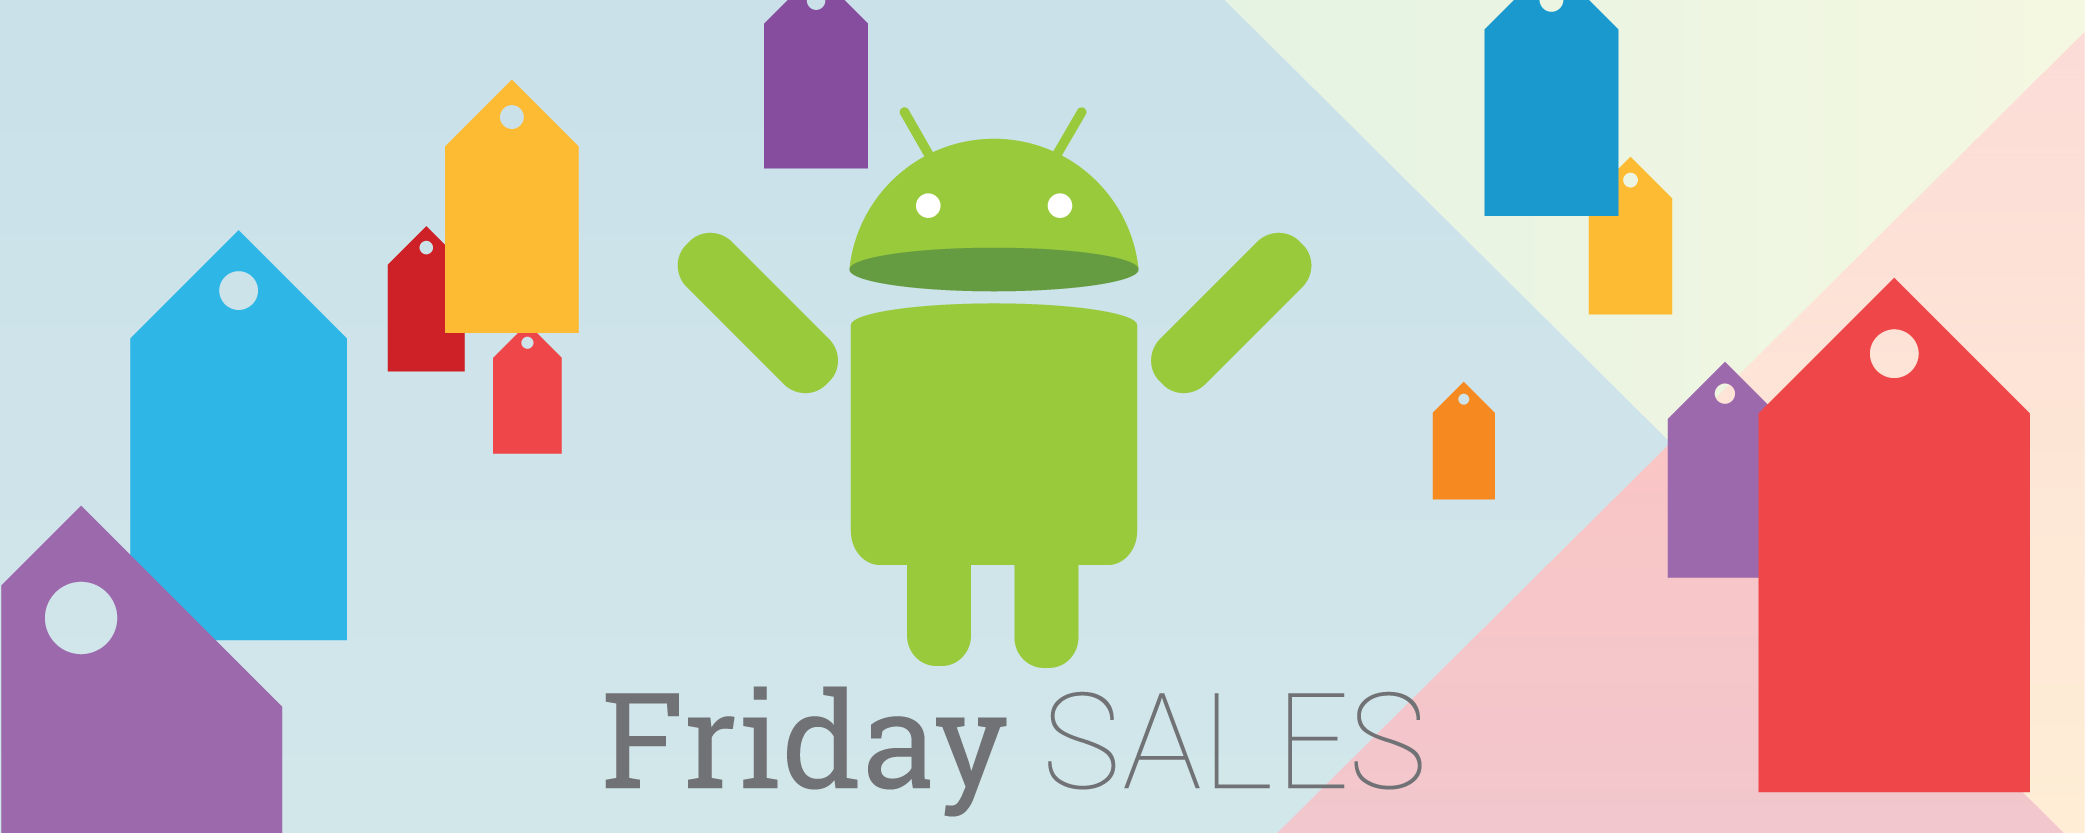 25 temporarily free and 40 on-sale apps and games for Friday